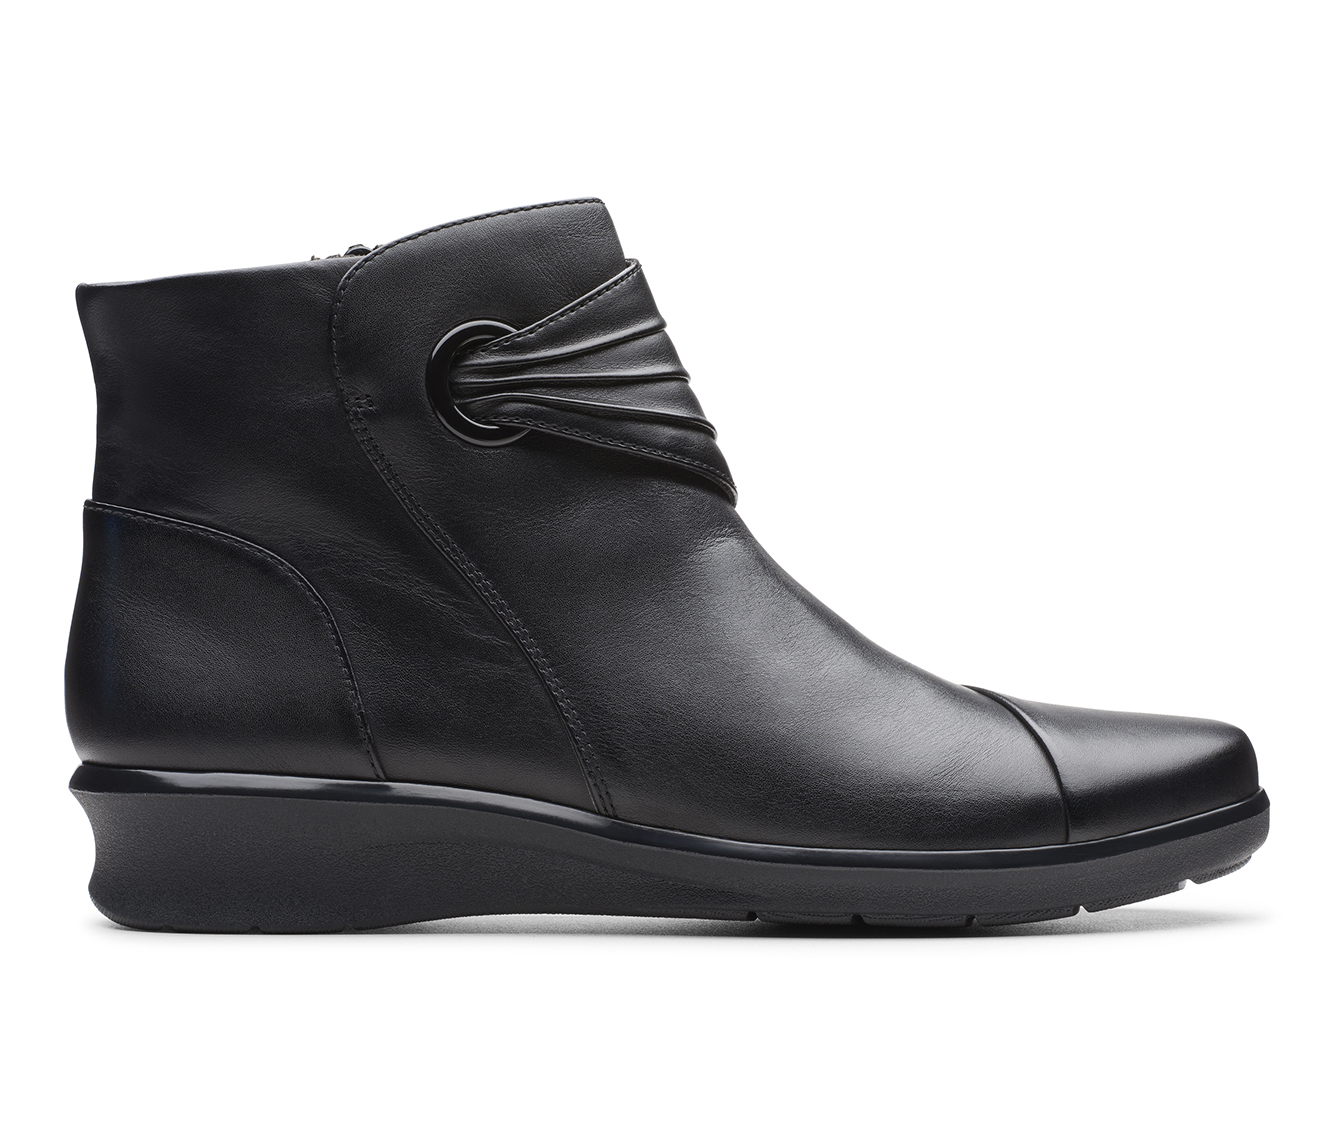 Clarks Hope Twirl Women's Boots (Black - Leather)